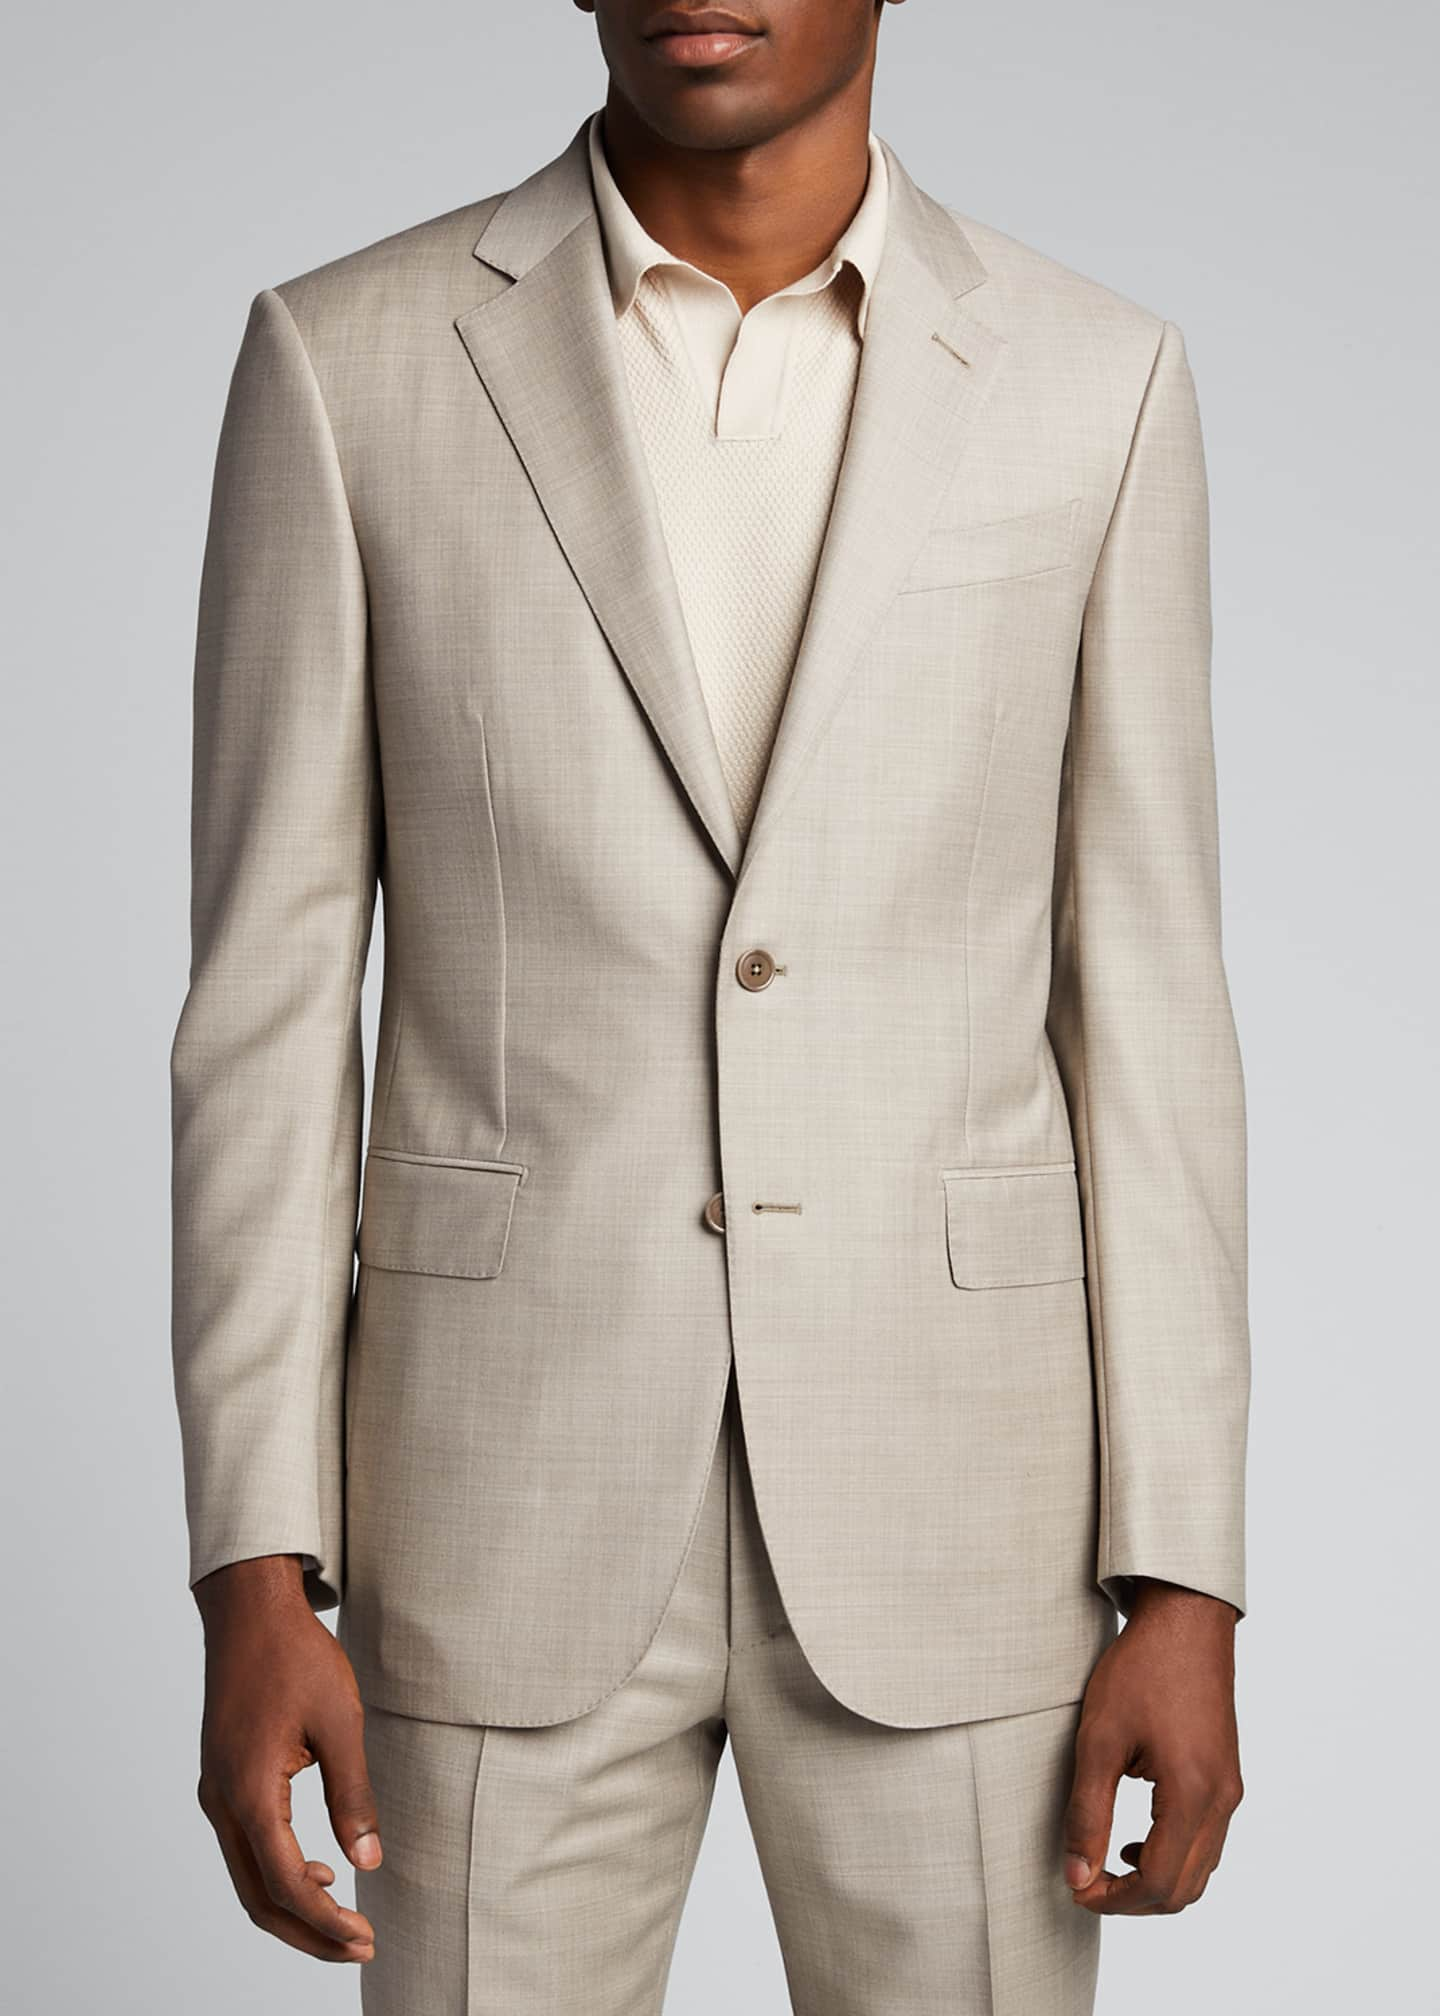 Image 3 of 5: Men's Heathered Solid Regular-Fit Wool Two-Piece Suit